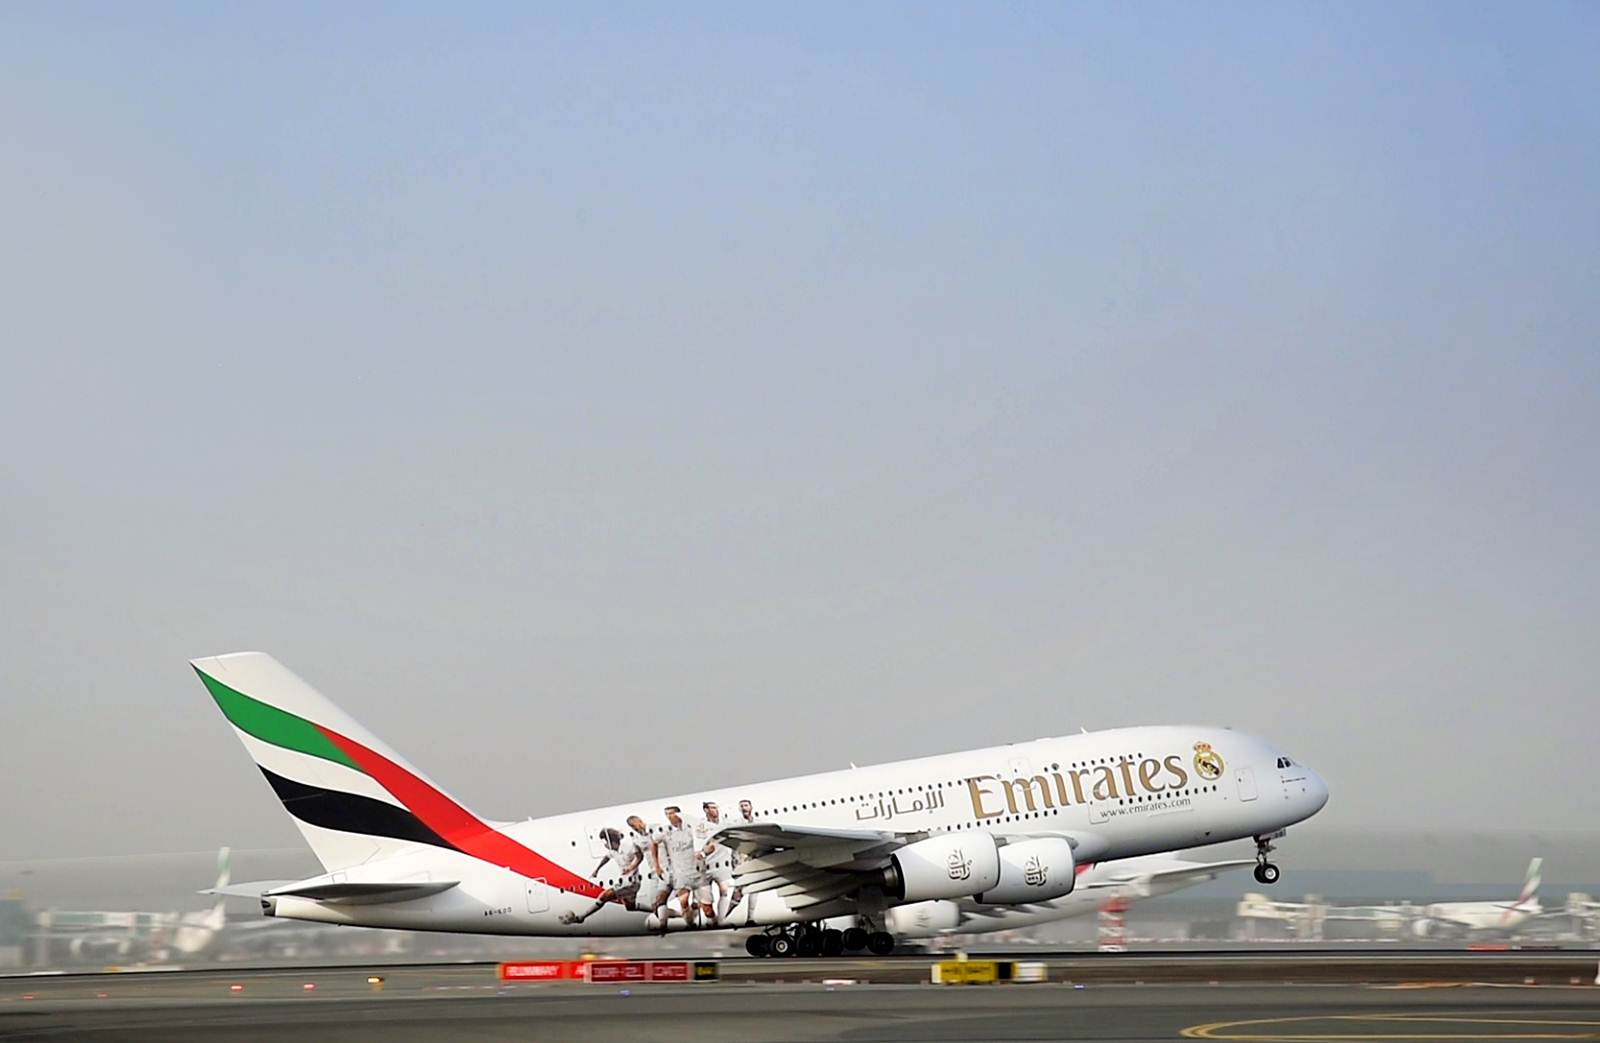 A380 da Emirates com pintura do Real Madrid a descolar do aeroporto de Barajas em Espanha